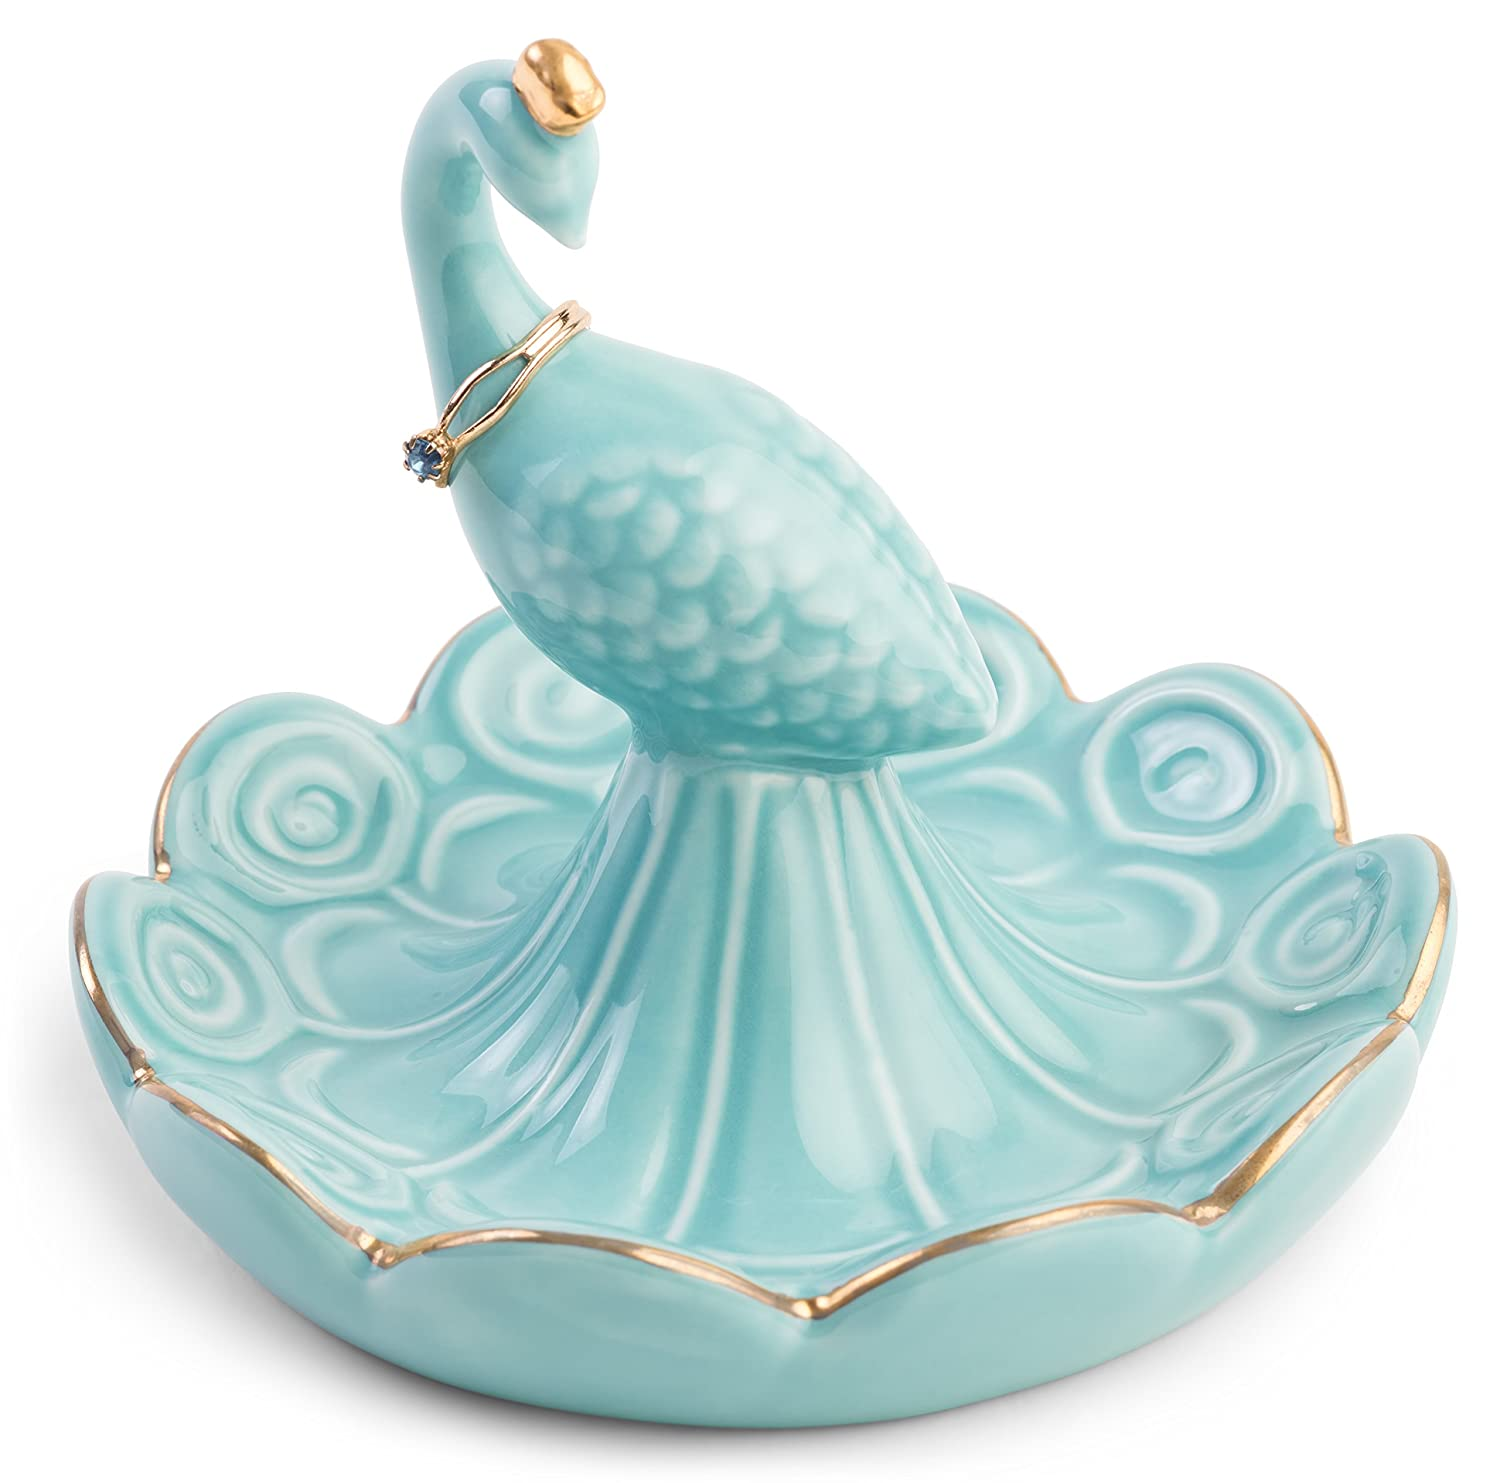 Monarch Housewares Peacock Ring Jewelry Holder – Aqua Blue and Gold Porcelain – Tray Trinket Coin Tidbit Dish Great Gift Item